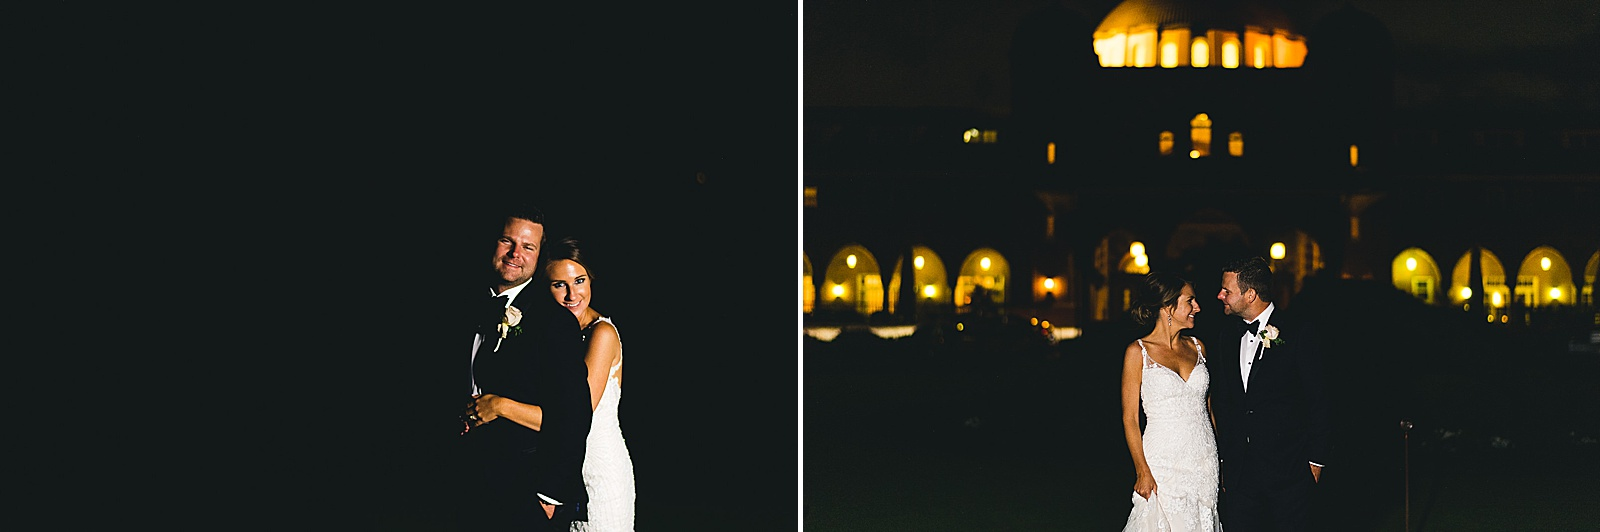 65 night portraits of bride and groom